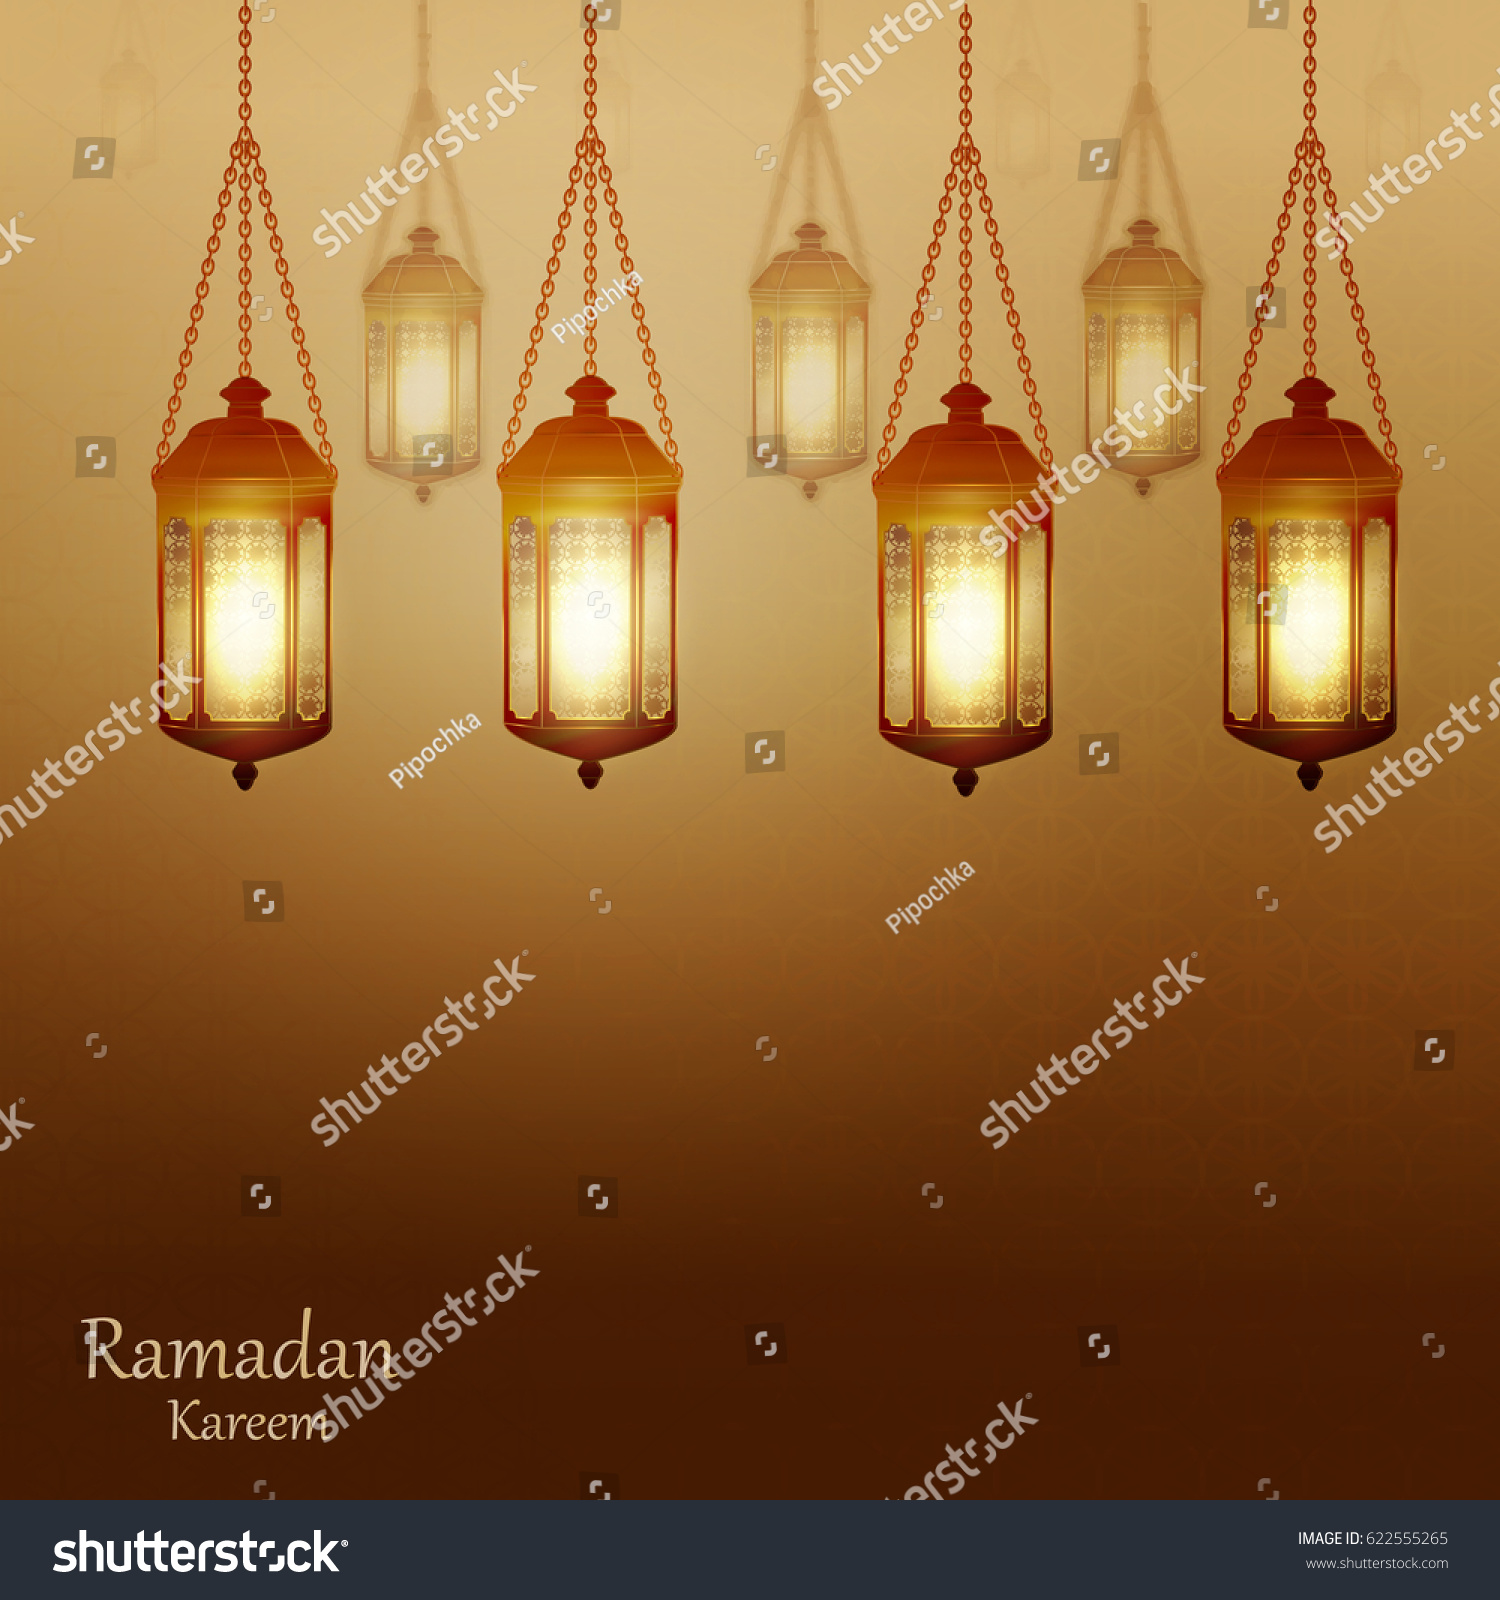 model furniture brass lamp models obj stained arabic mtl glass dae blend fbx cgtrader